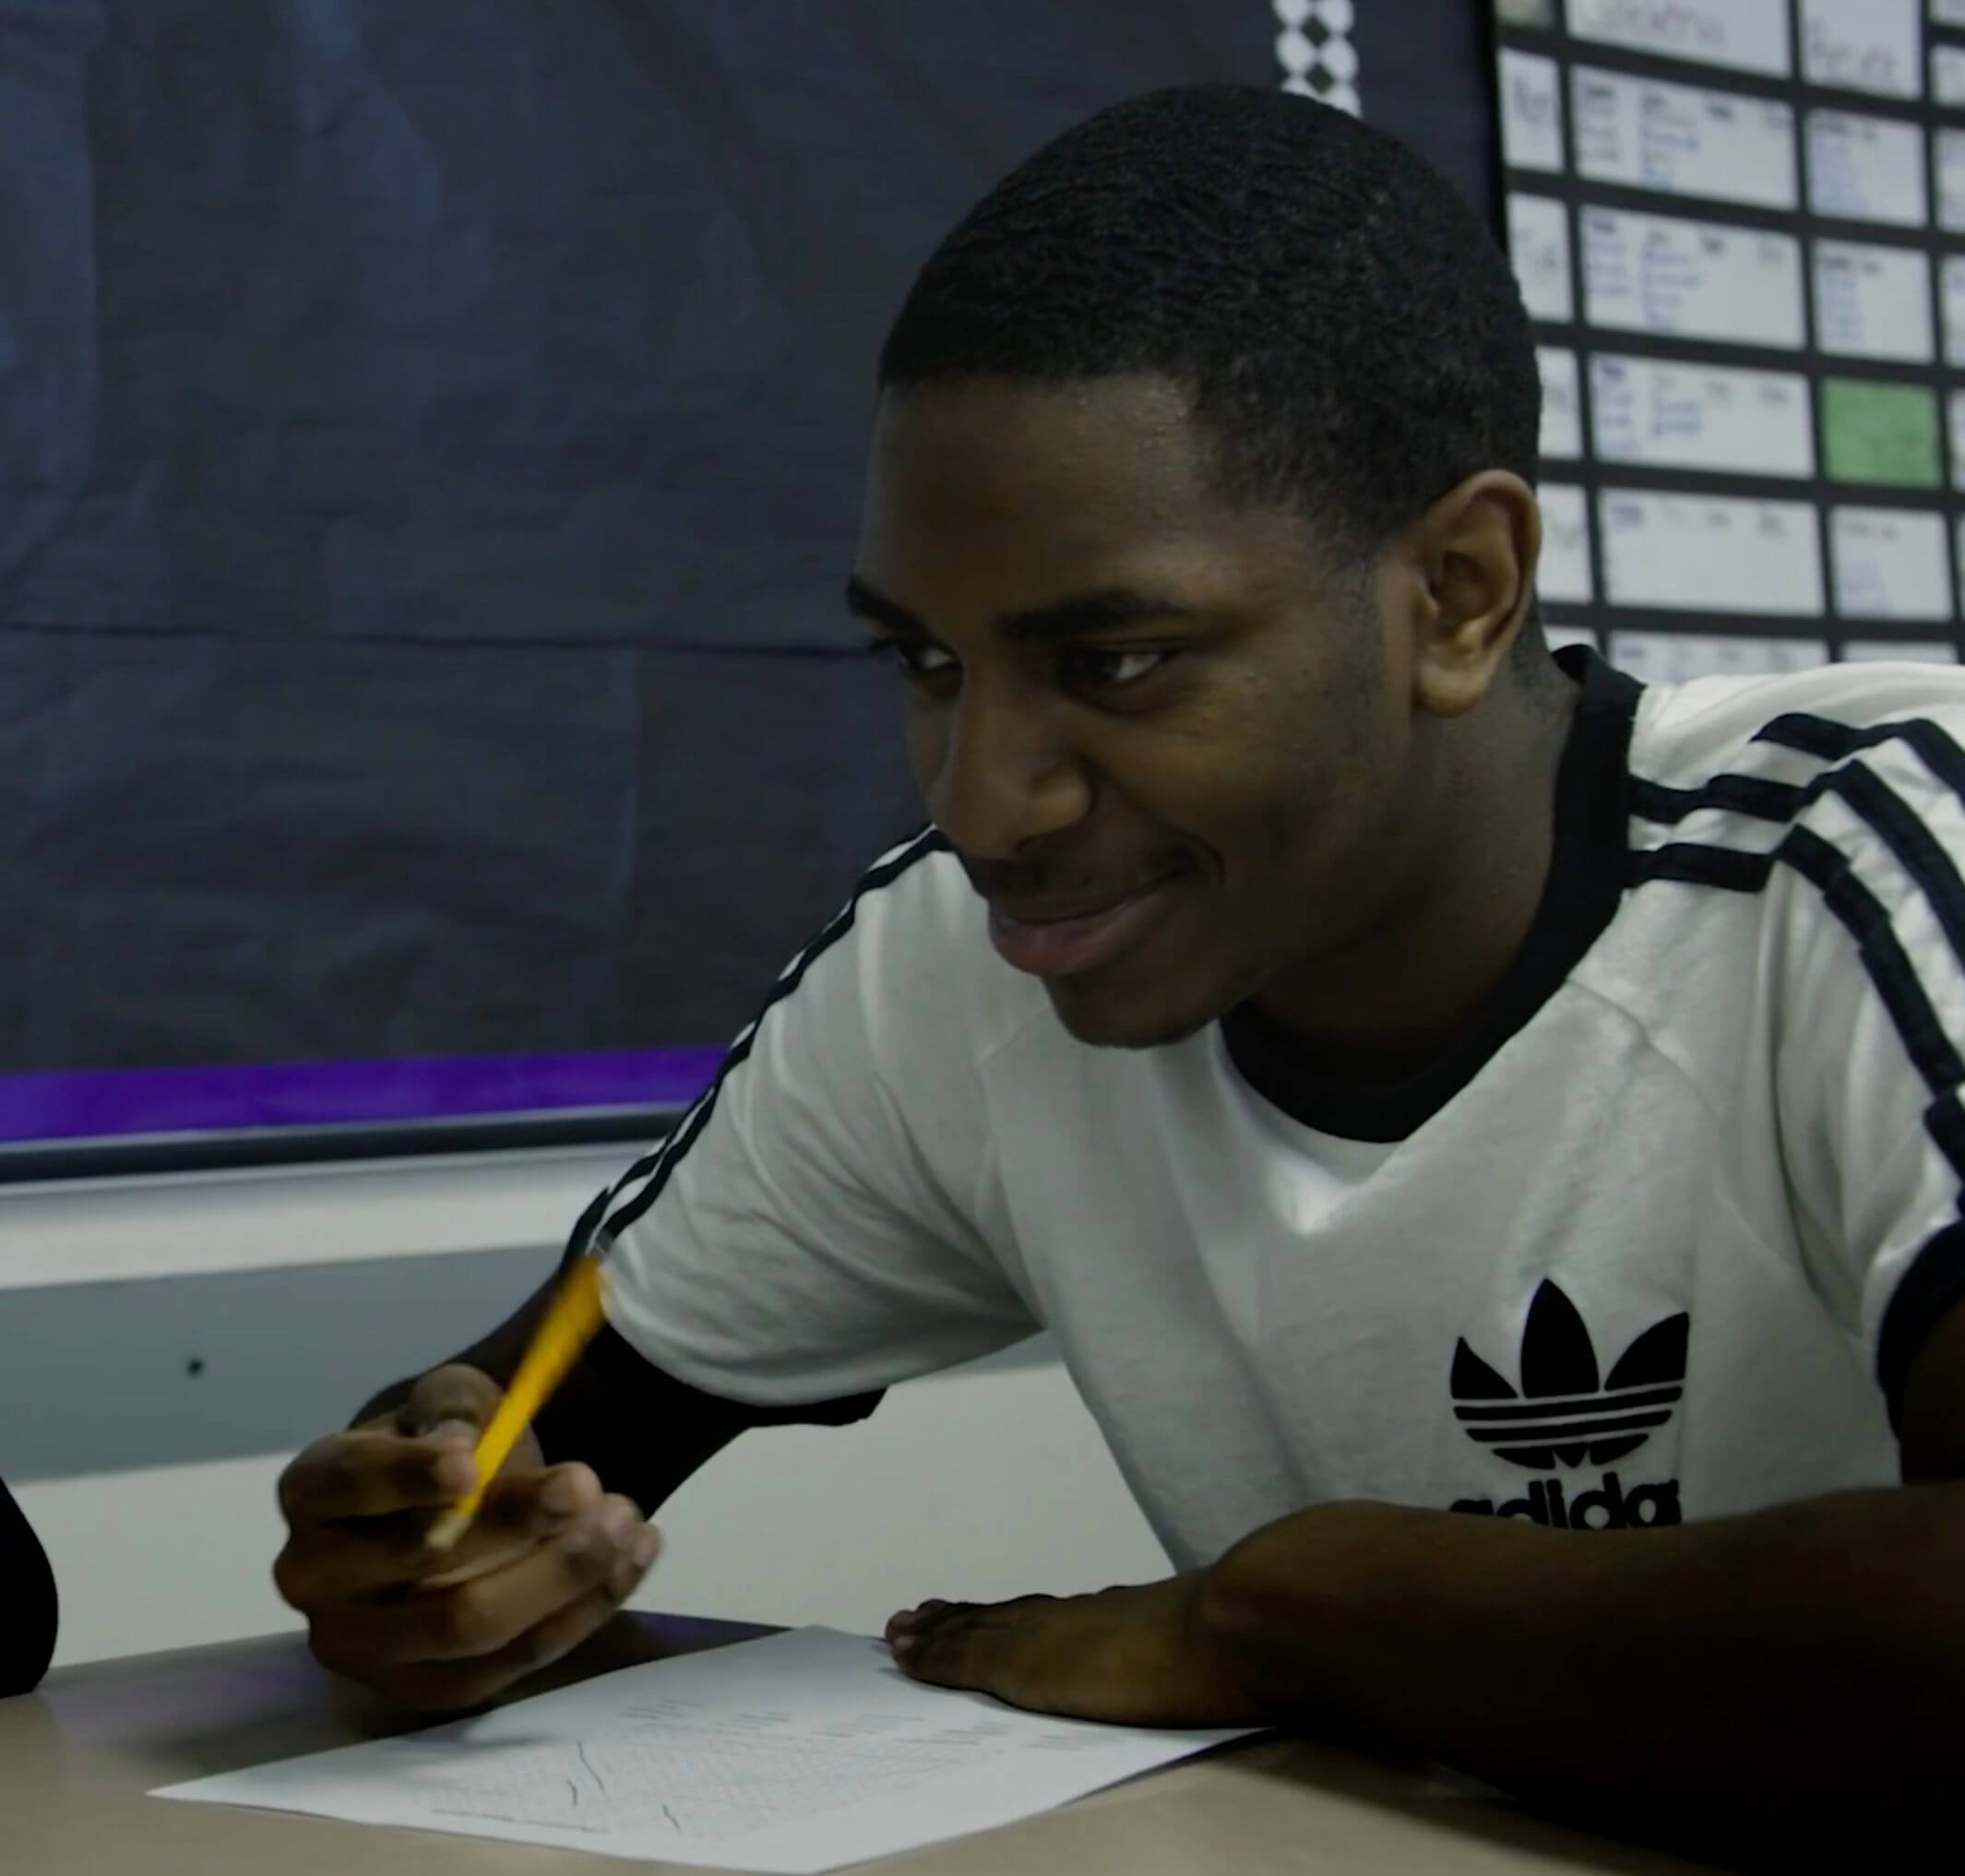 A student holding a pencil, smiling in class.